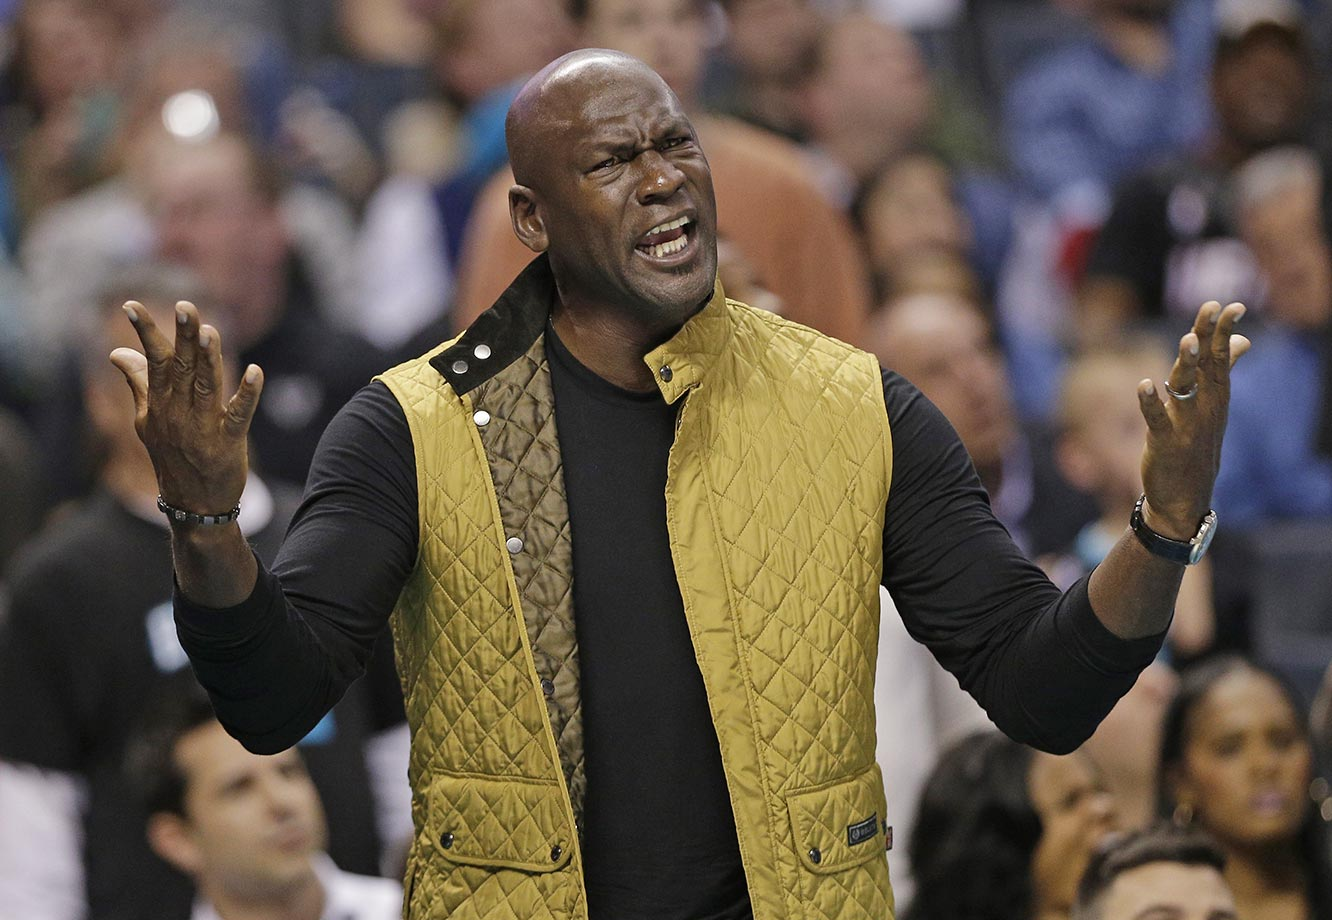 Charlotte Hornets owner Michael Jordan reacts to a call during his squad's game against the Miami Heat.